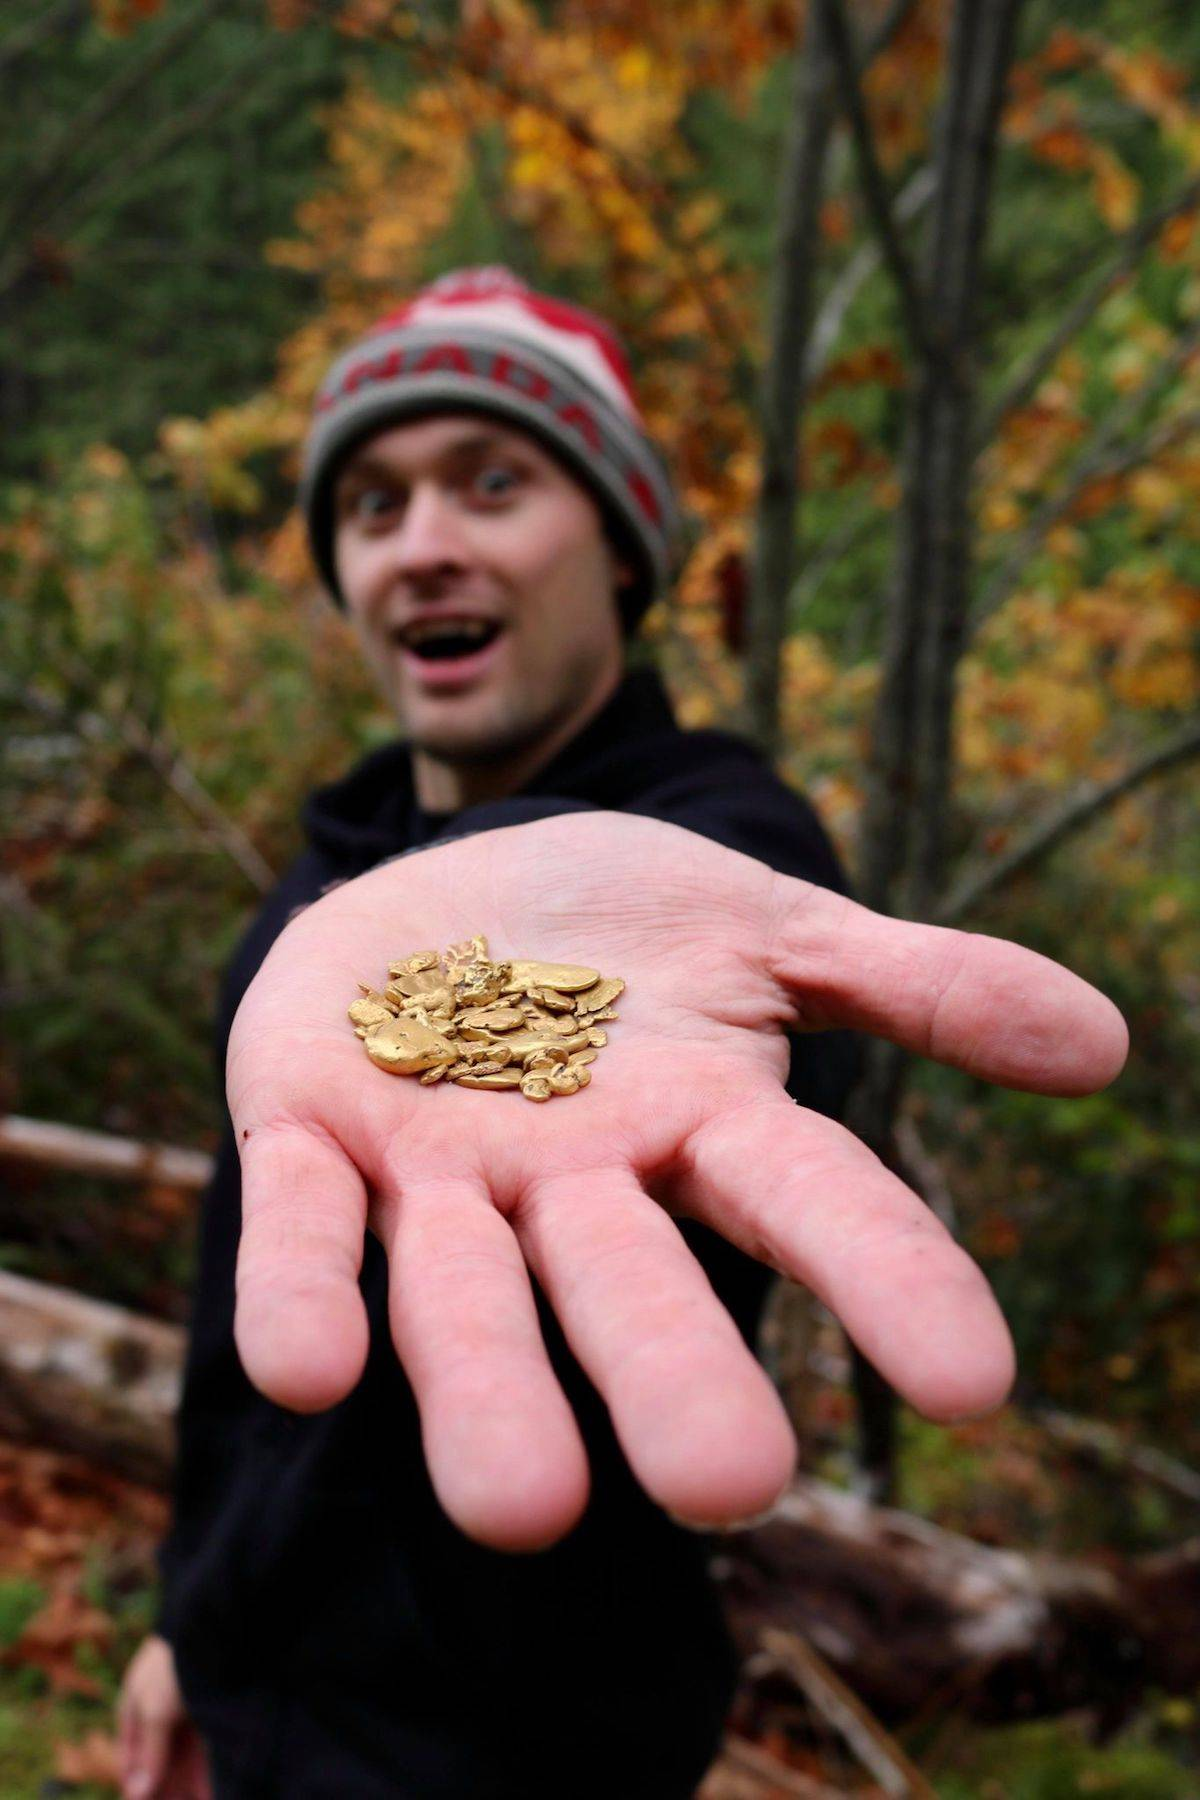 Man Finds Gold Mine On Property : finds, property, Hitting, Jackpot:, Sooke, Finds, Niche, Audience, Gold-panning, YouTube, Vancouver, Island, Daily